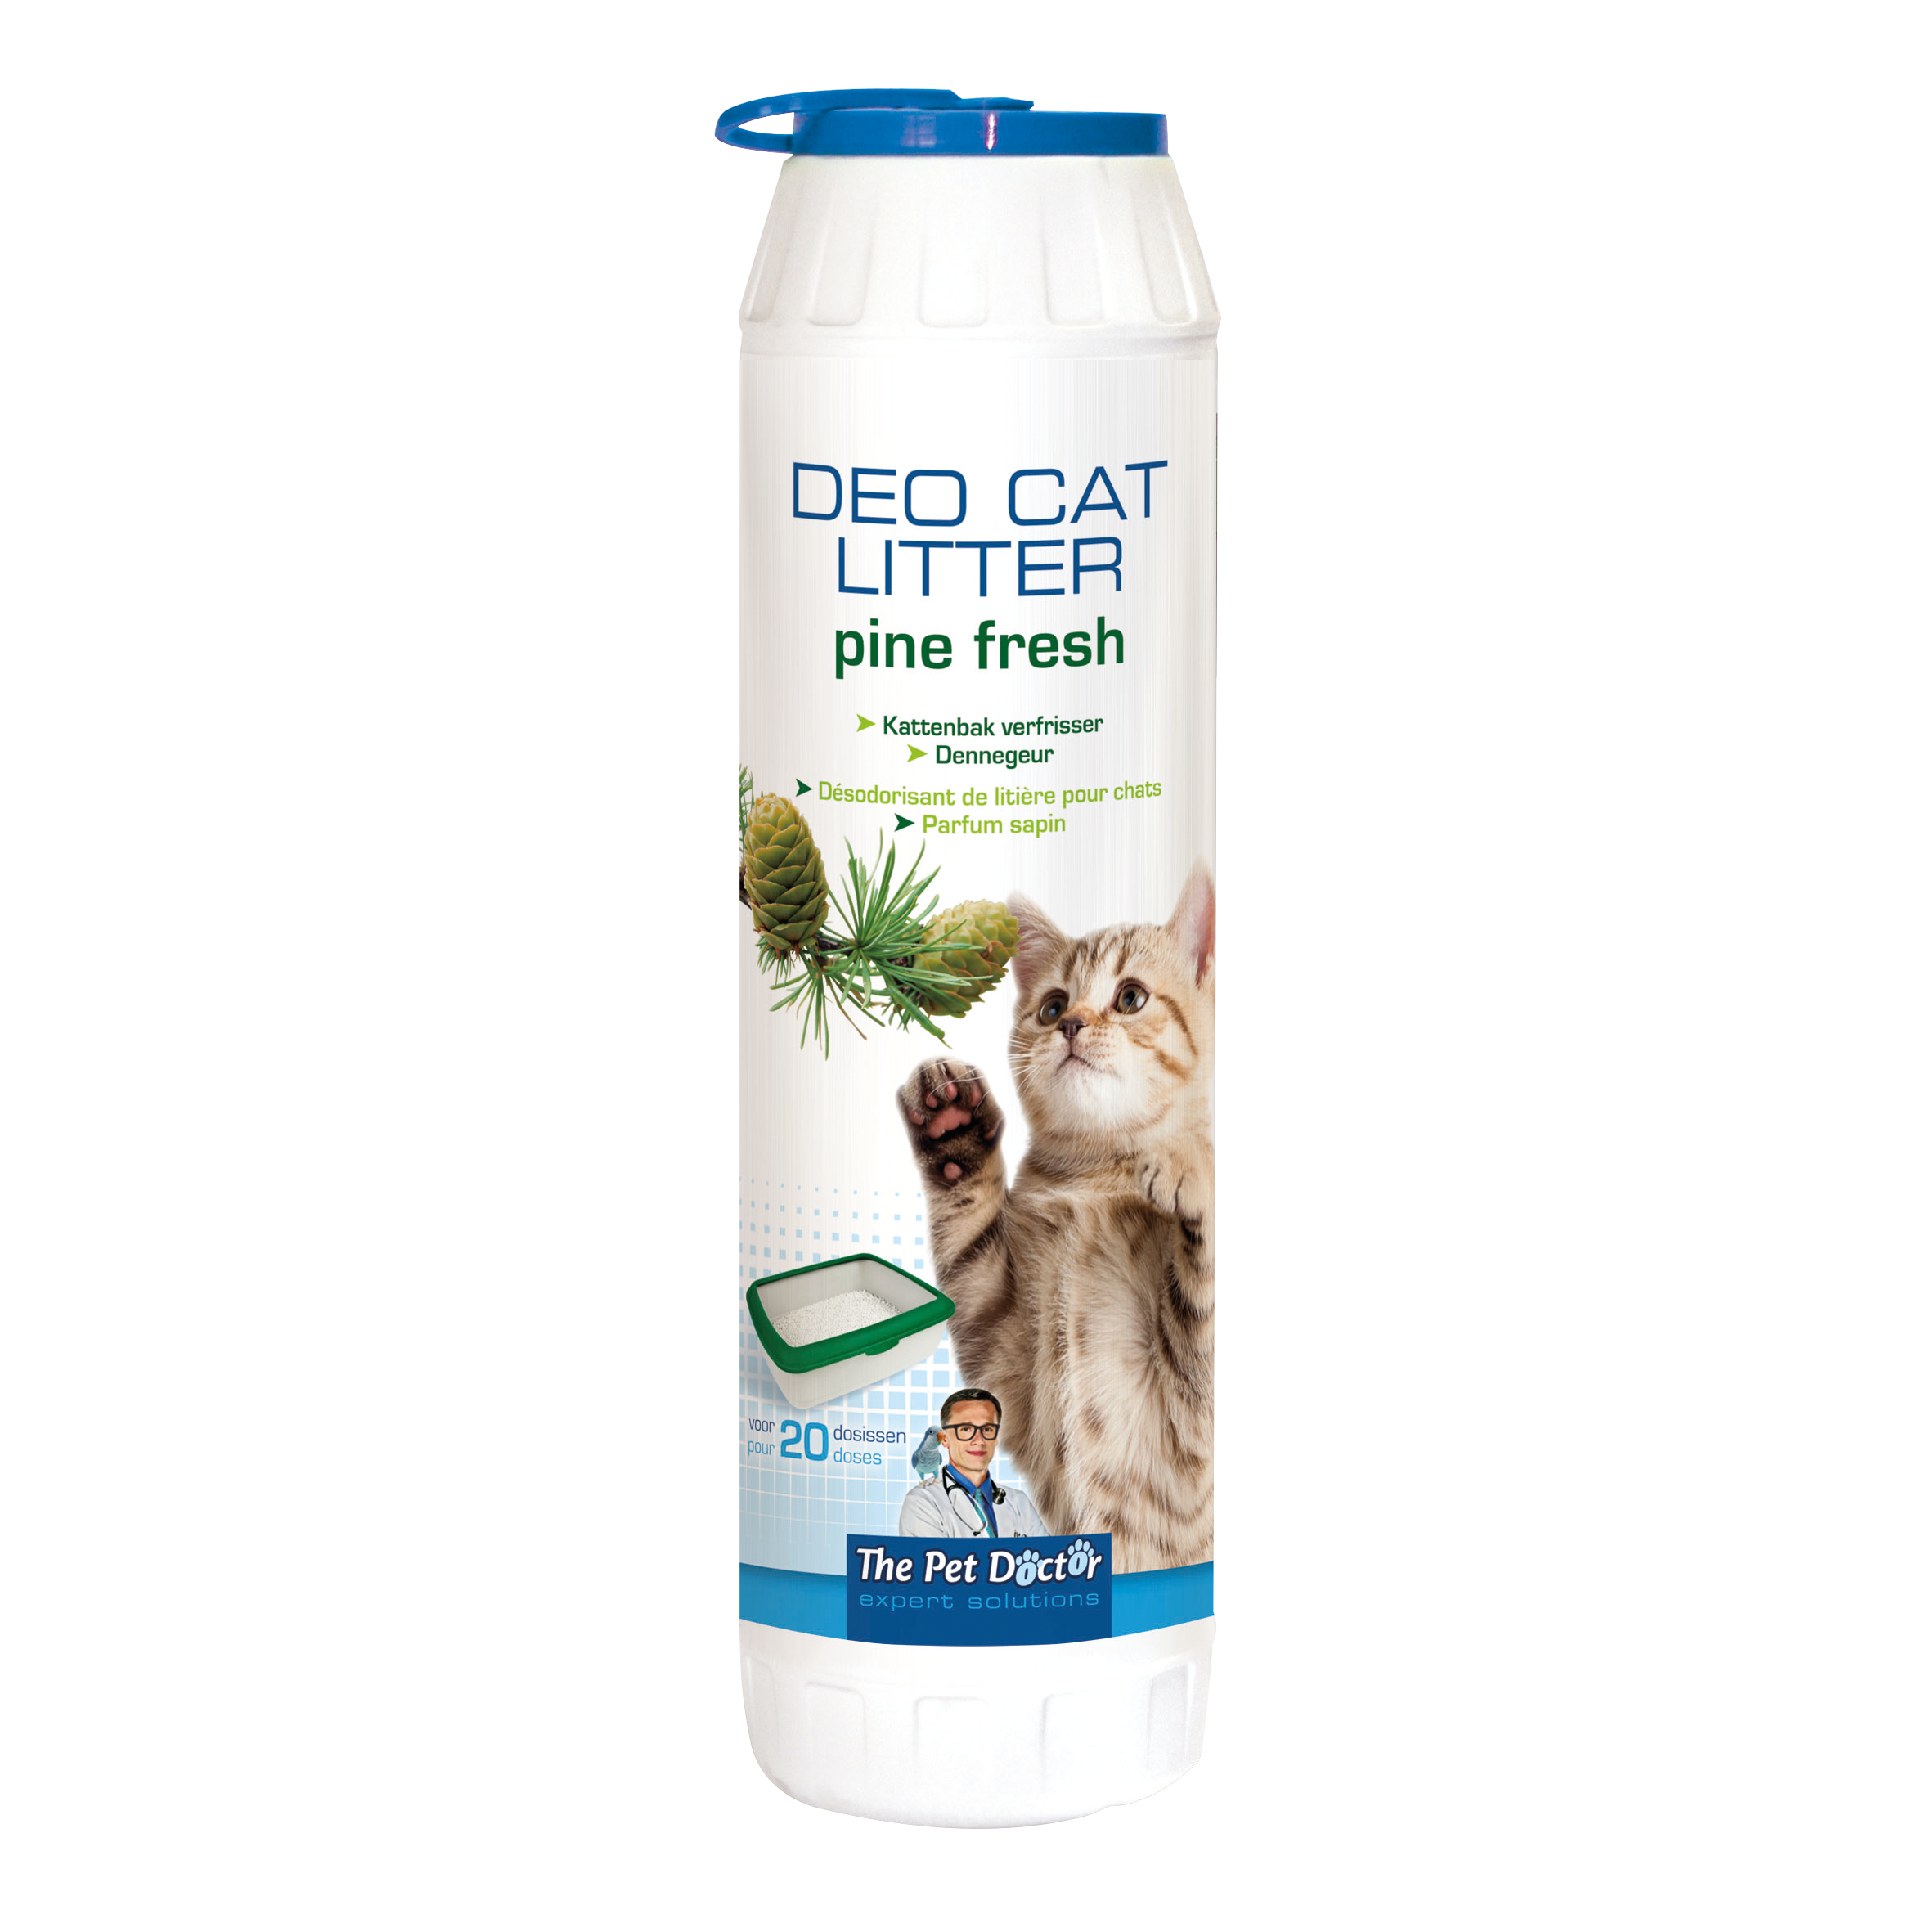 The Pet Doctor Deo Cat Litter Pine Fresh 750 g image